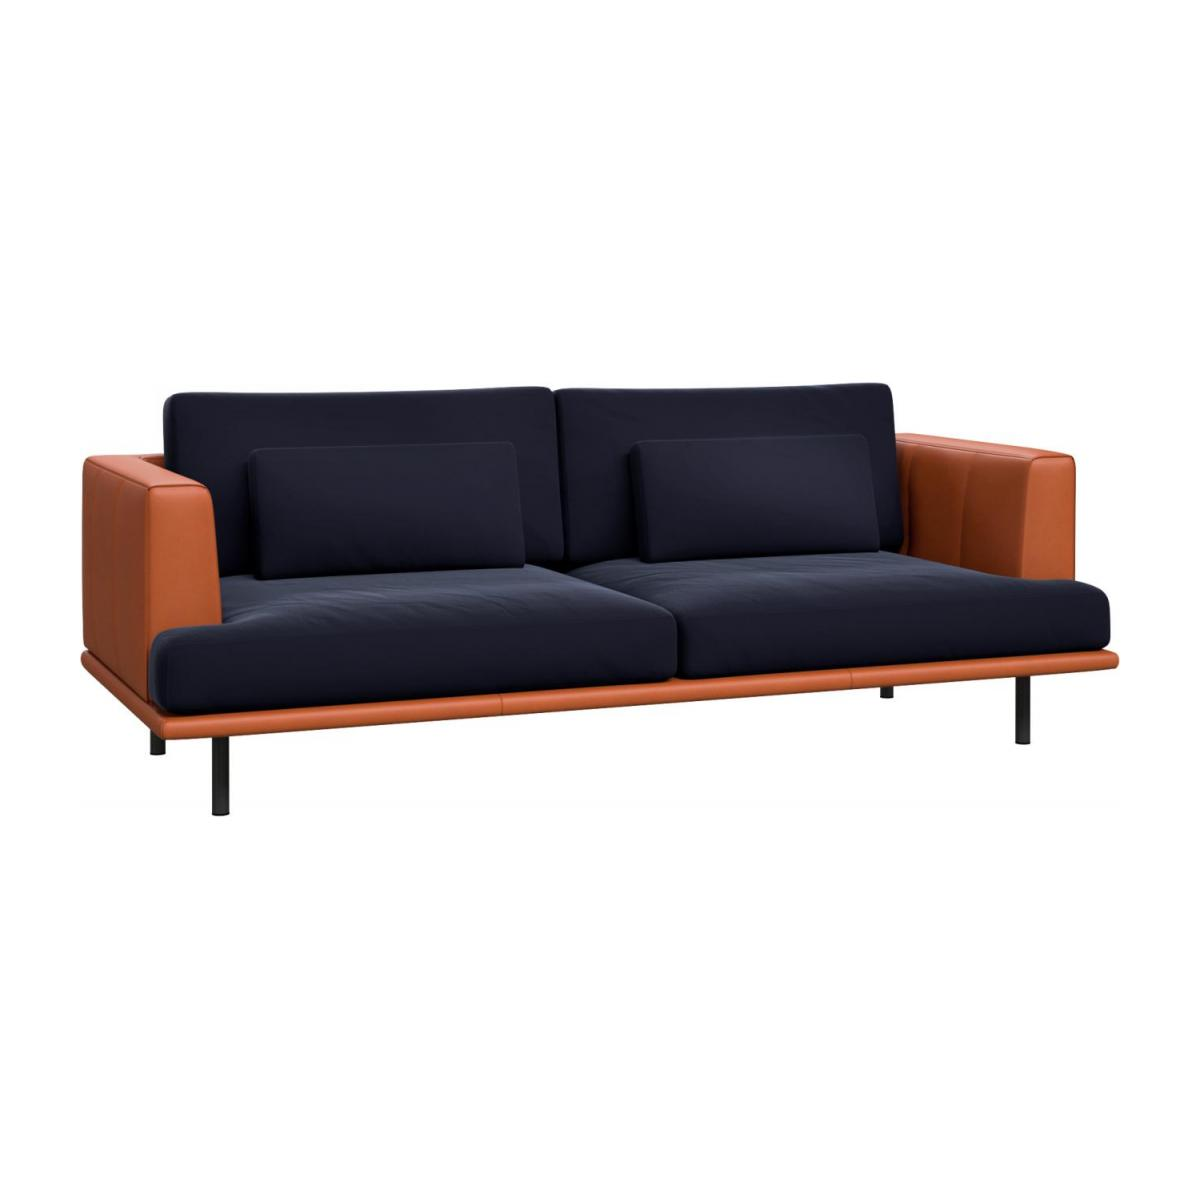 3 seater sofa in Super Velvet fabric, dark blue with base and armrests in brown leather n°1